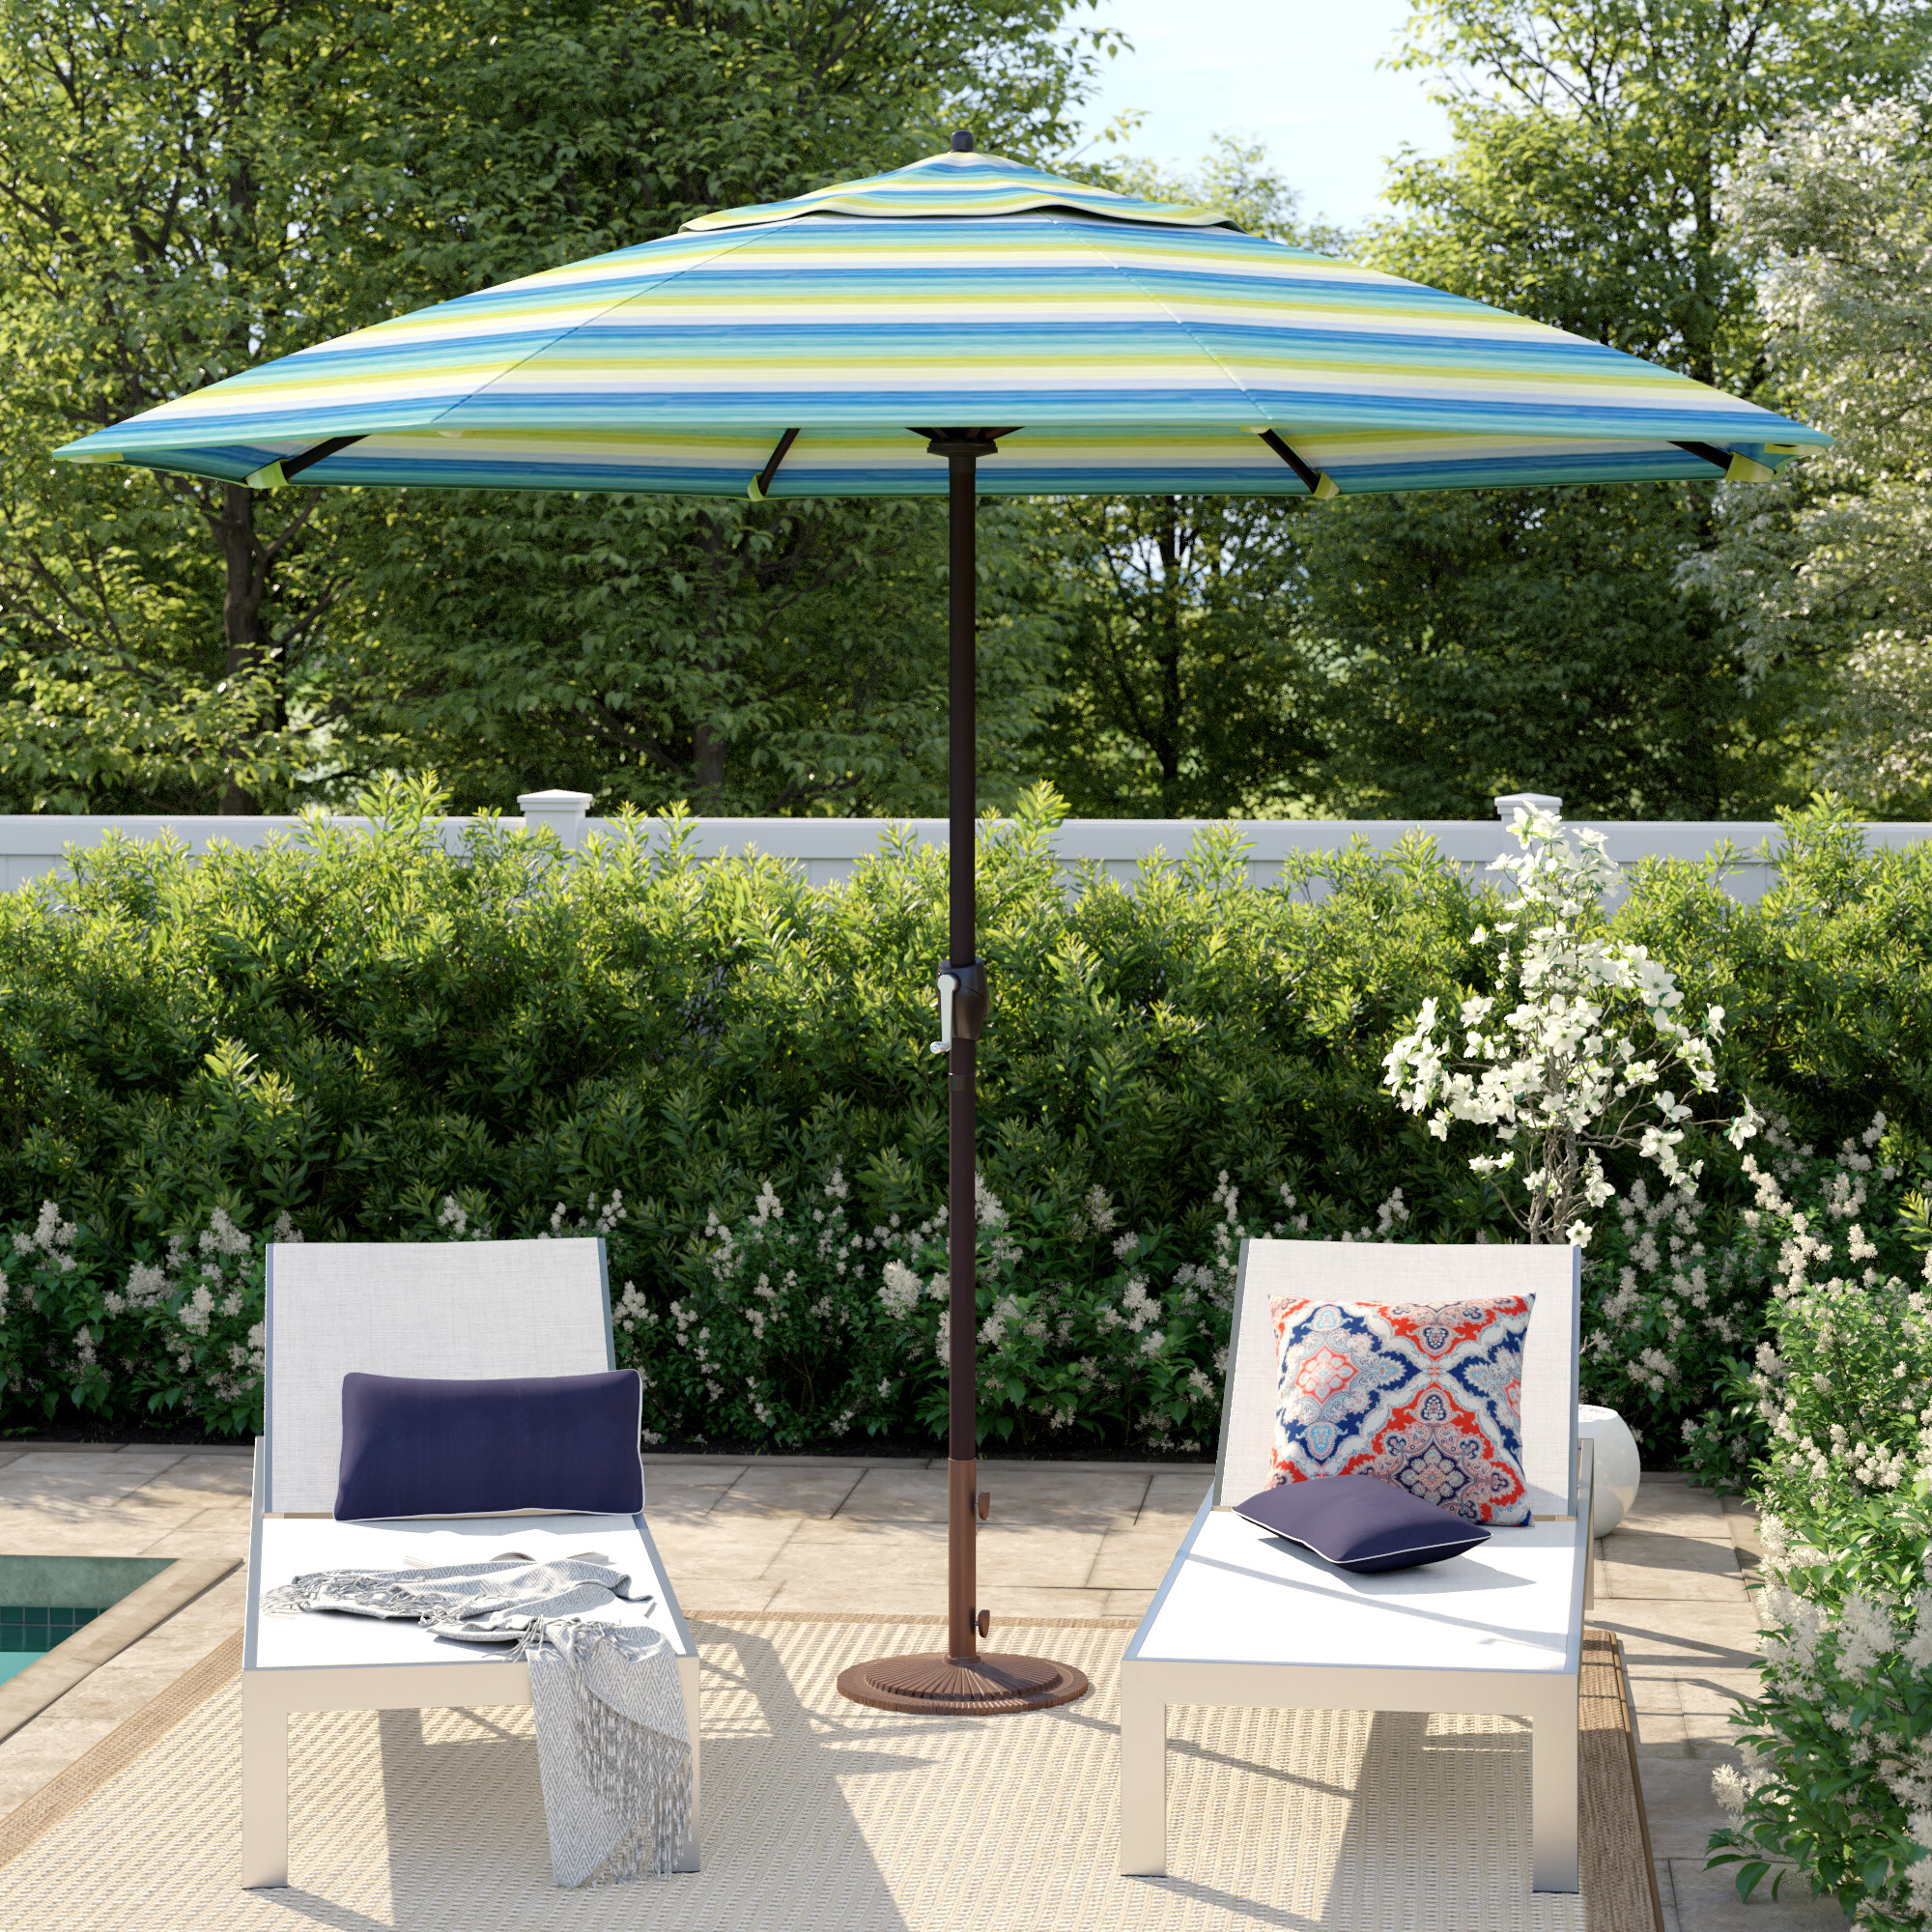 Cardine 9' Market Sunbrella Umbrella With Popular Fleetwood Market Umbrellas (View 2 of 20)